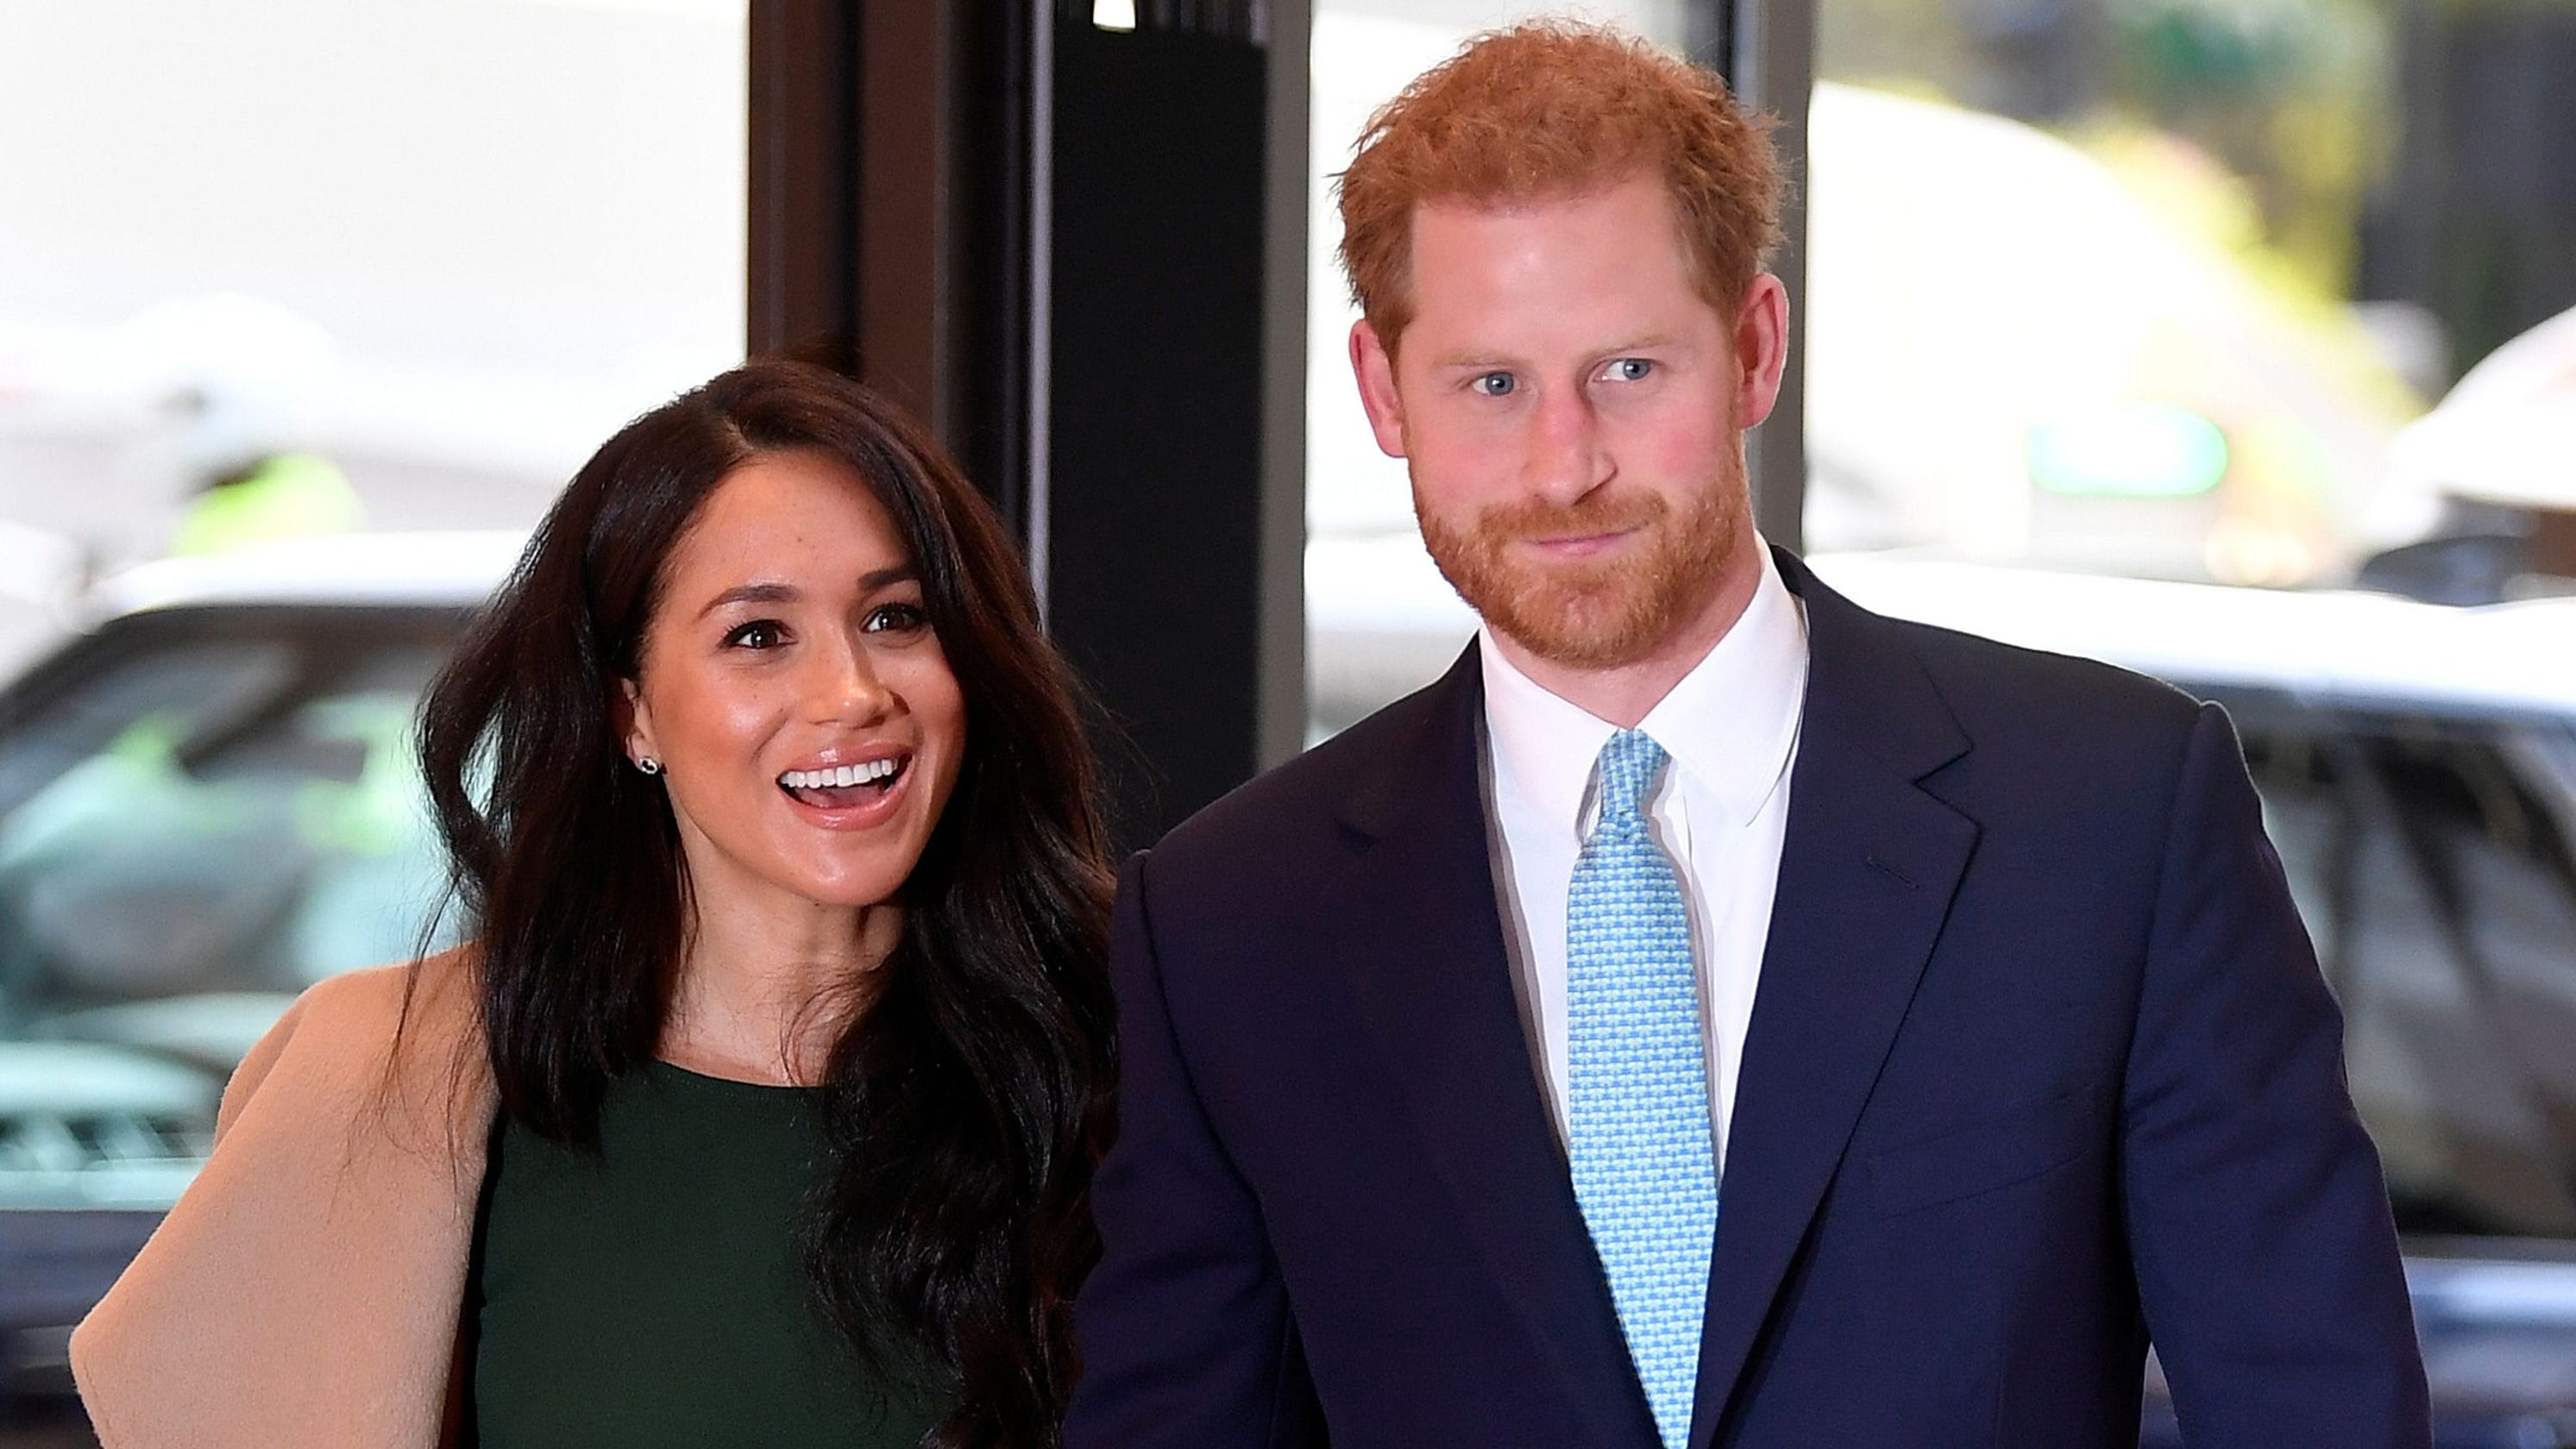 Westlake Legal Group 39a2ad09-6b2a-449a-b997-bd84e046ec9f-AFP_1LG16G Prince Harry gets candid about his relationship with Prince William, moving to Africa